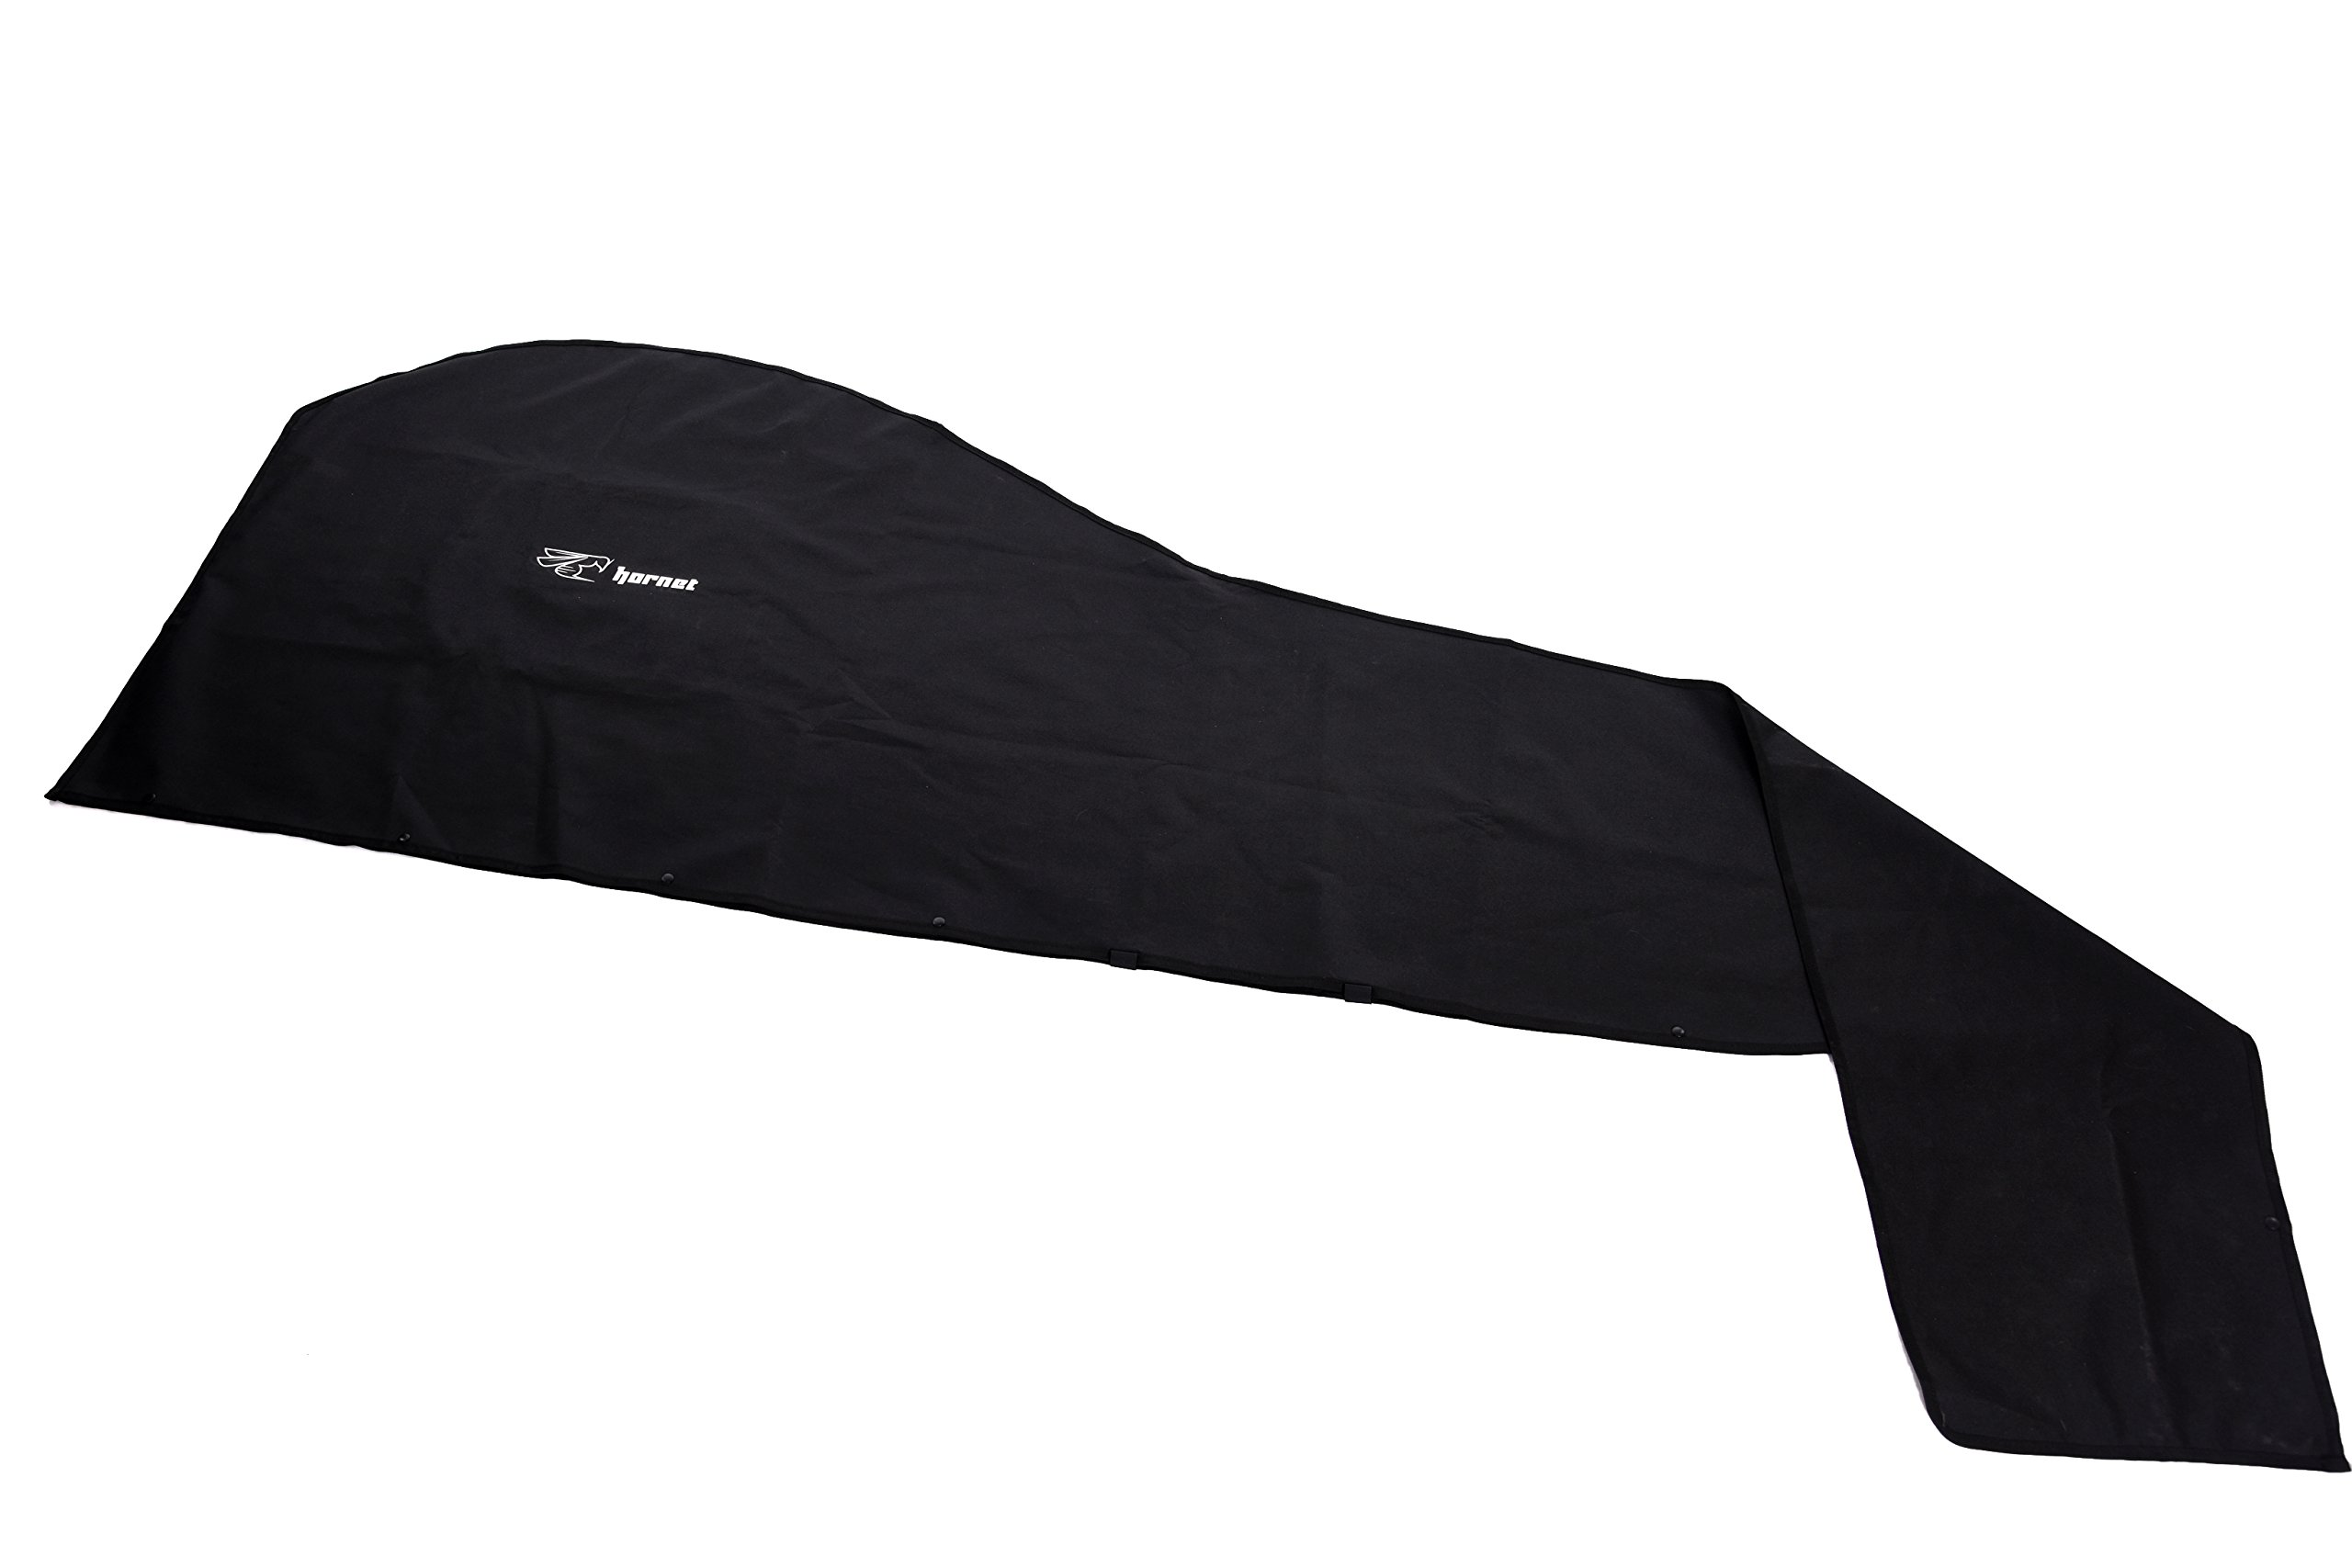 Hornet Watersports Protective Cover for The Concept 2 Rowing Machine- Free Bonus: Rowing Cushion by Hornet Watersports (Image #6)